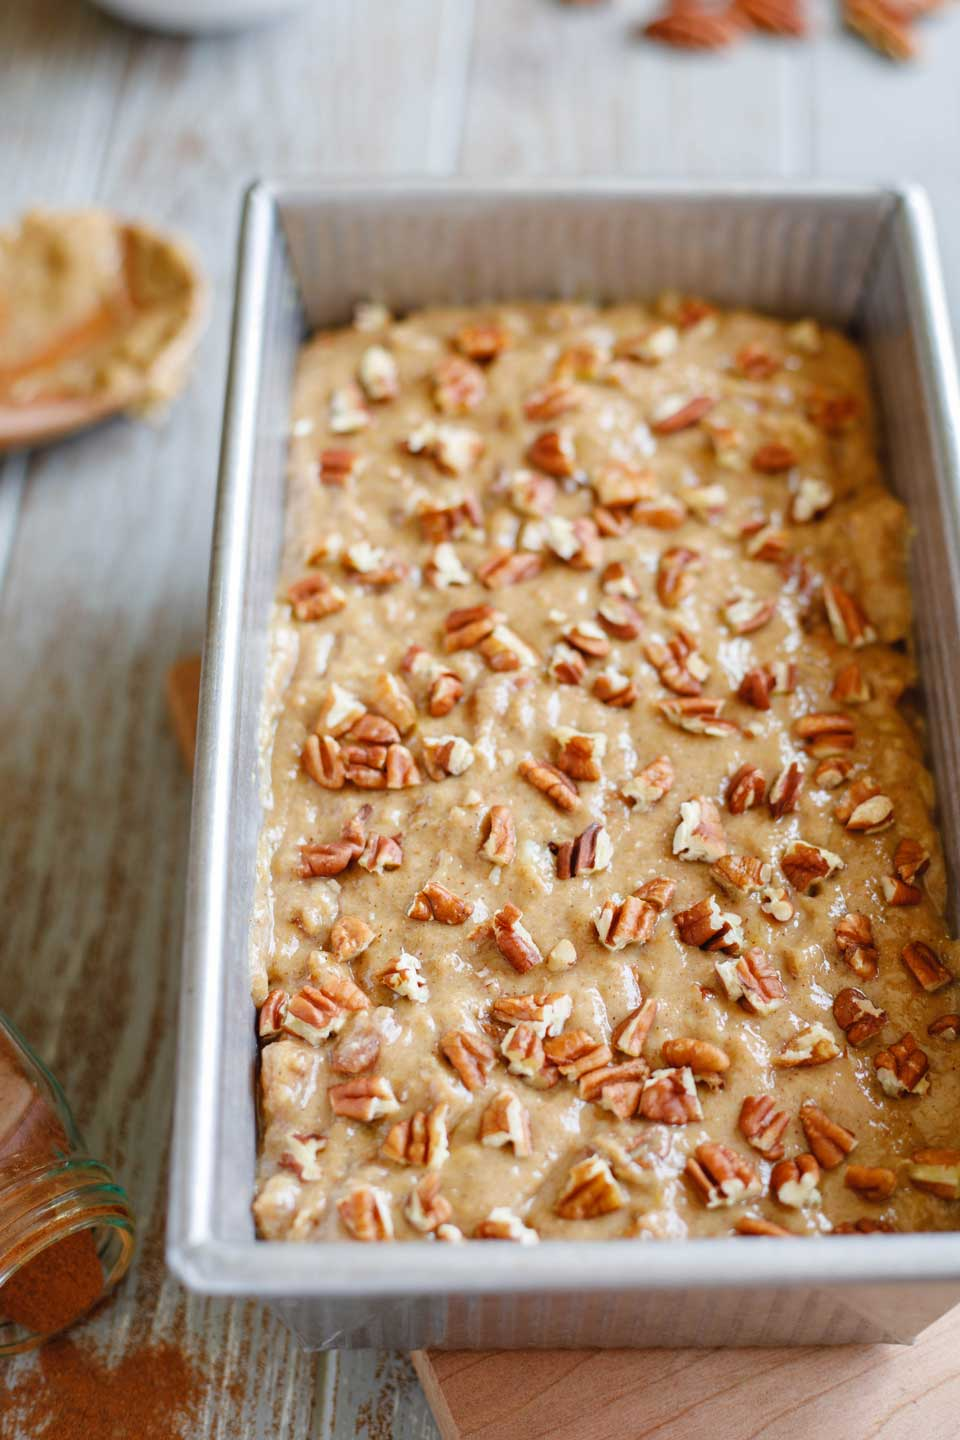 Loaf pan full of batter, sprinkled with pieces of pecans and ready for baking